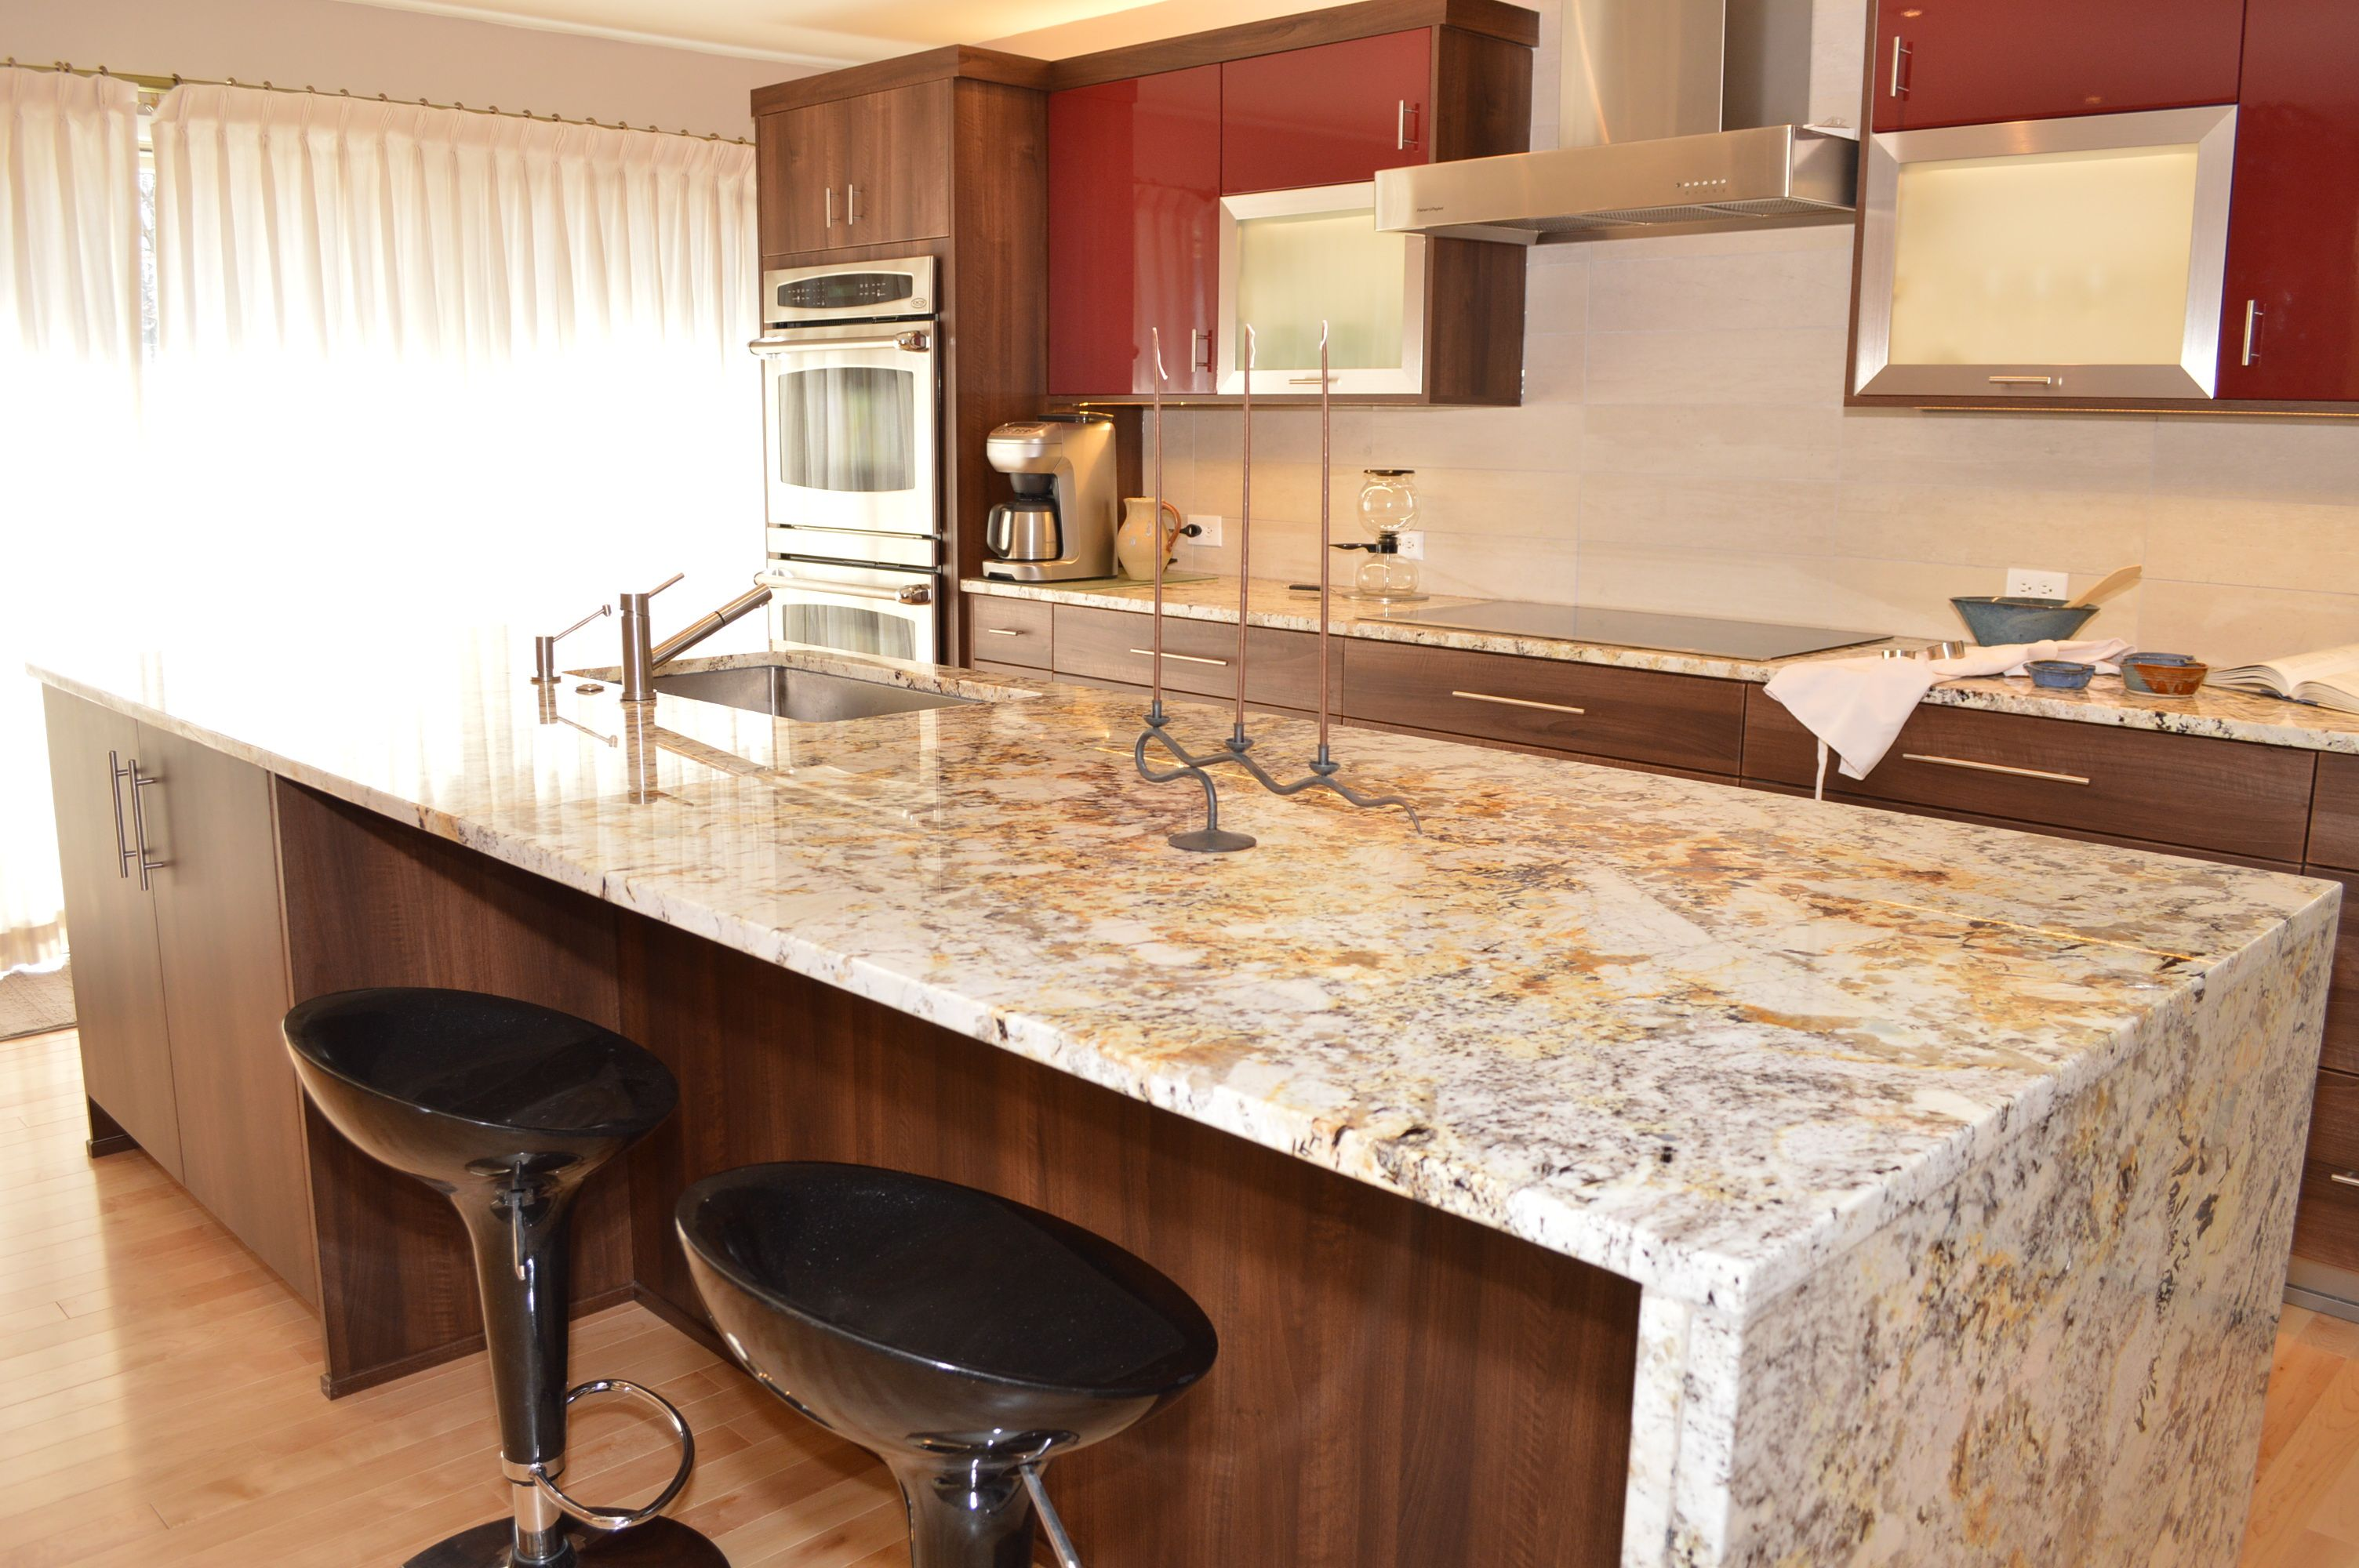 Granite Island Kitchen A Waterfall Edged Granite Island Is Fabricated For A Clean